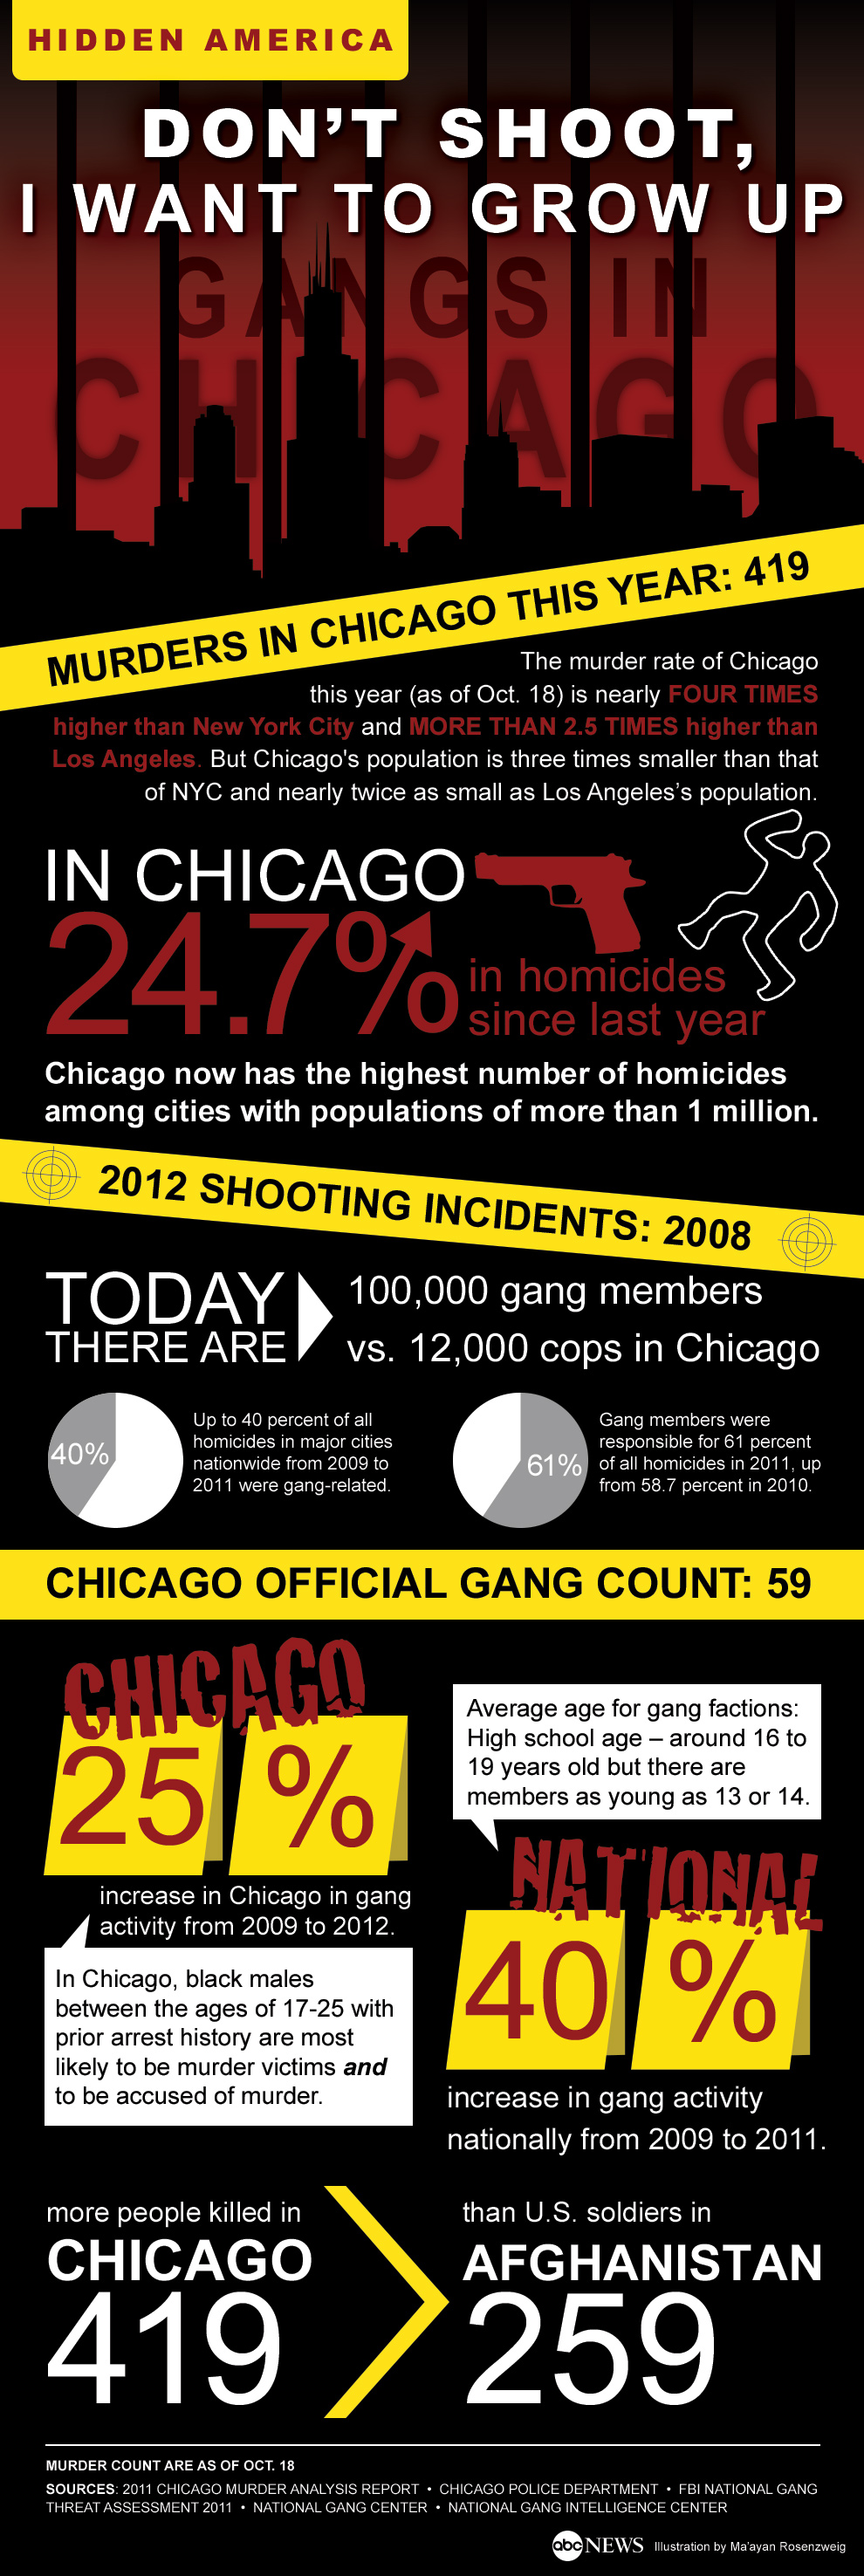 Chicago Gang Violence: By The Numbers - ABC News